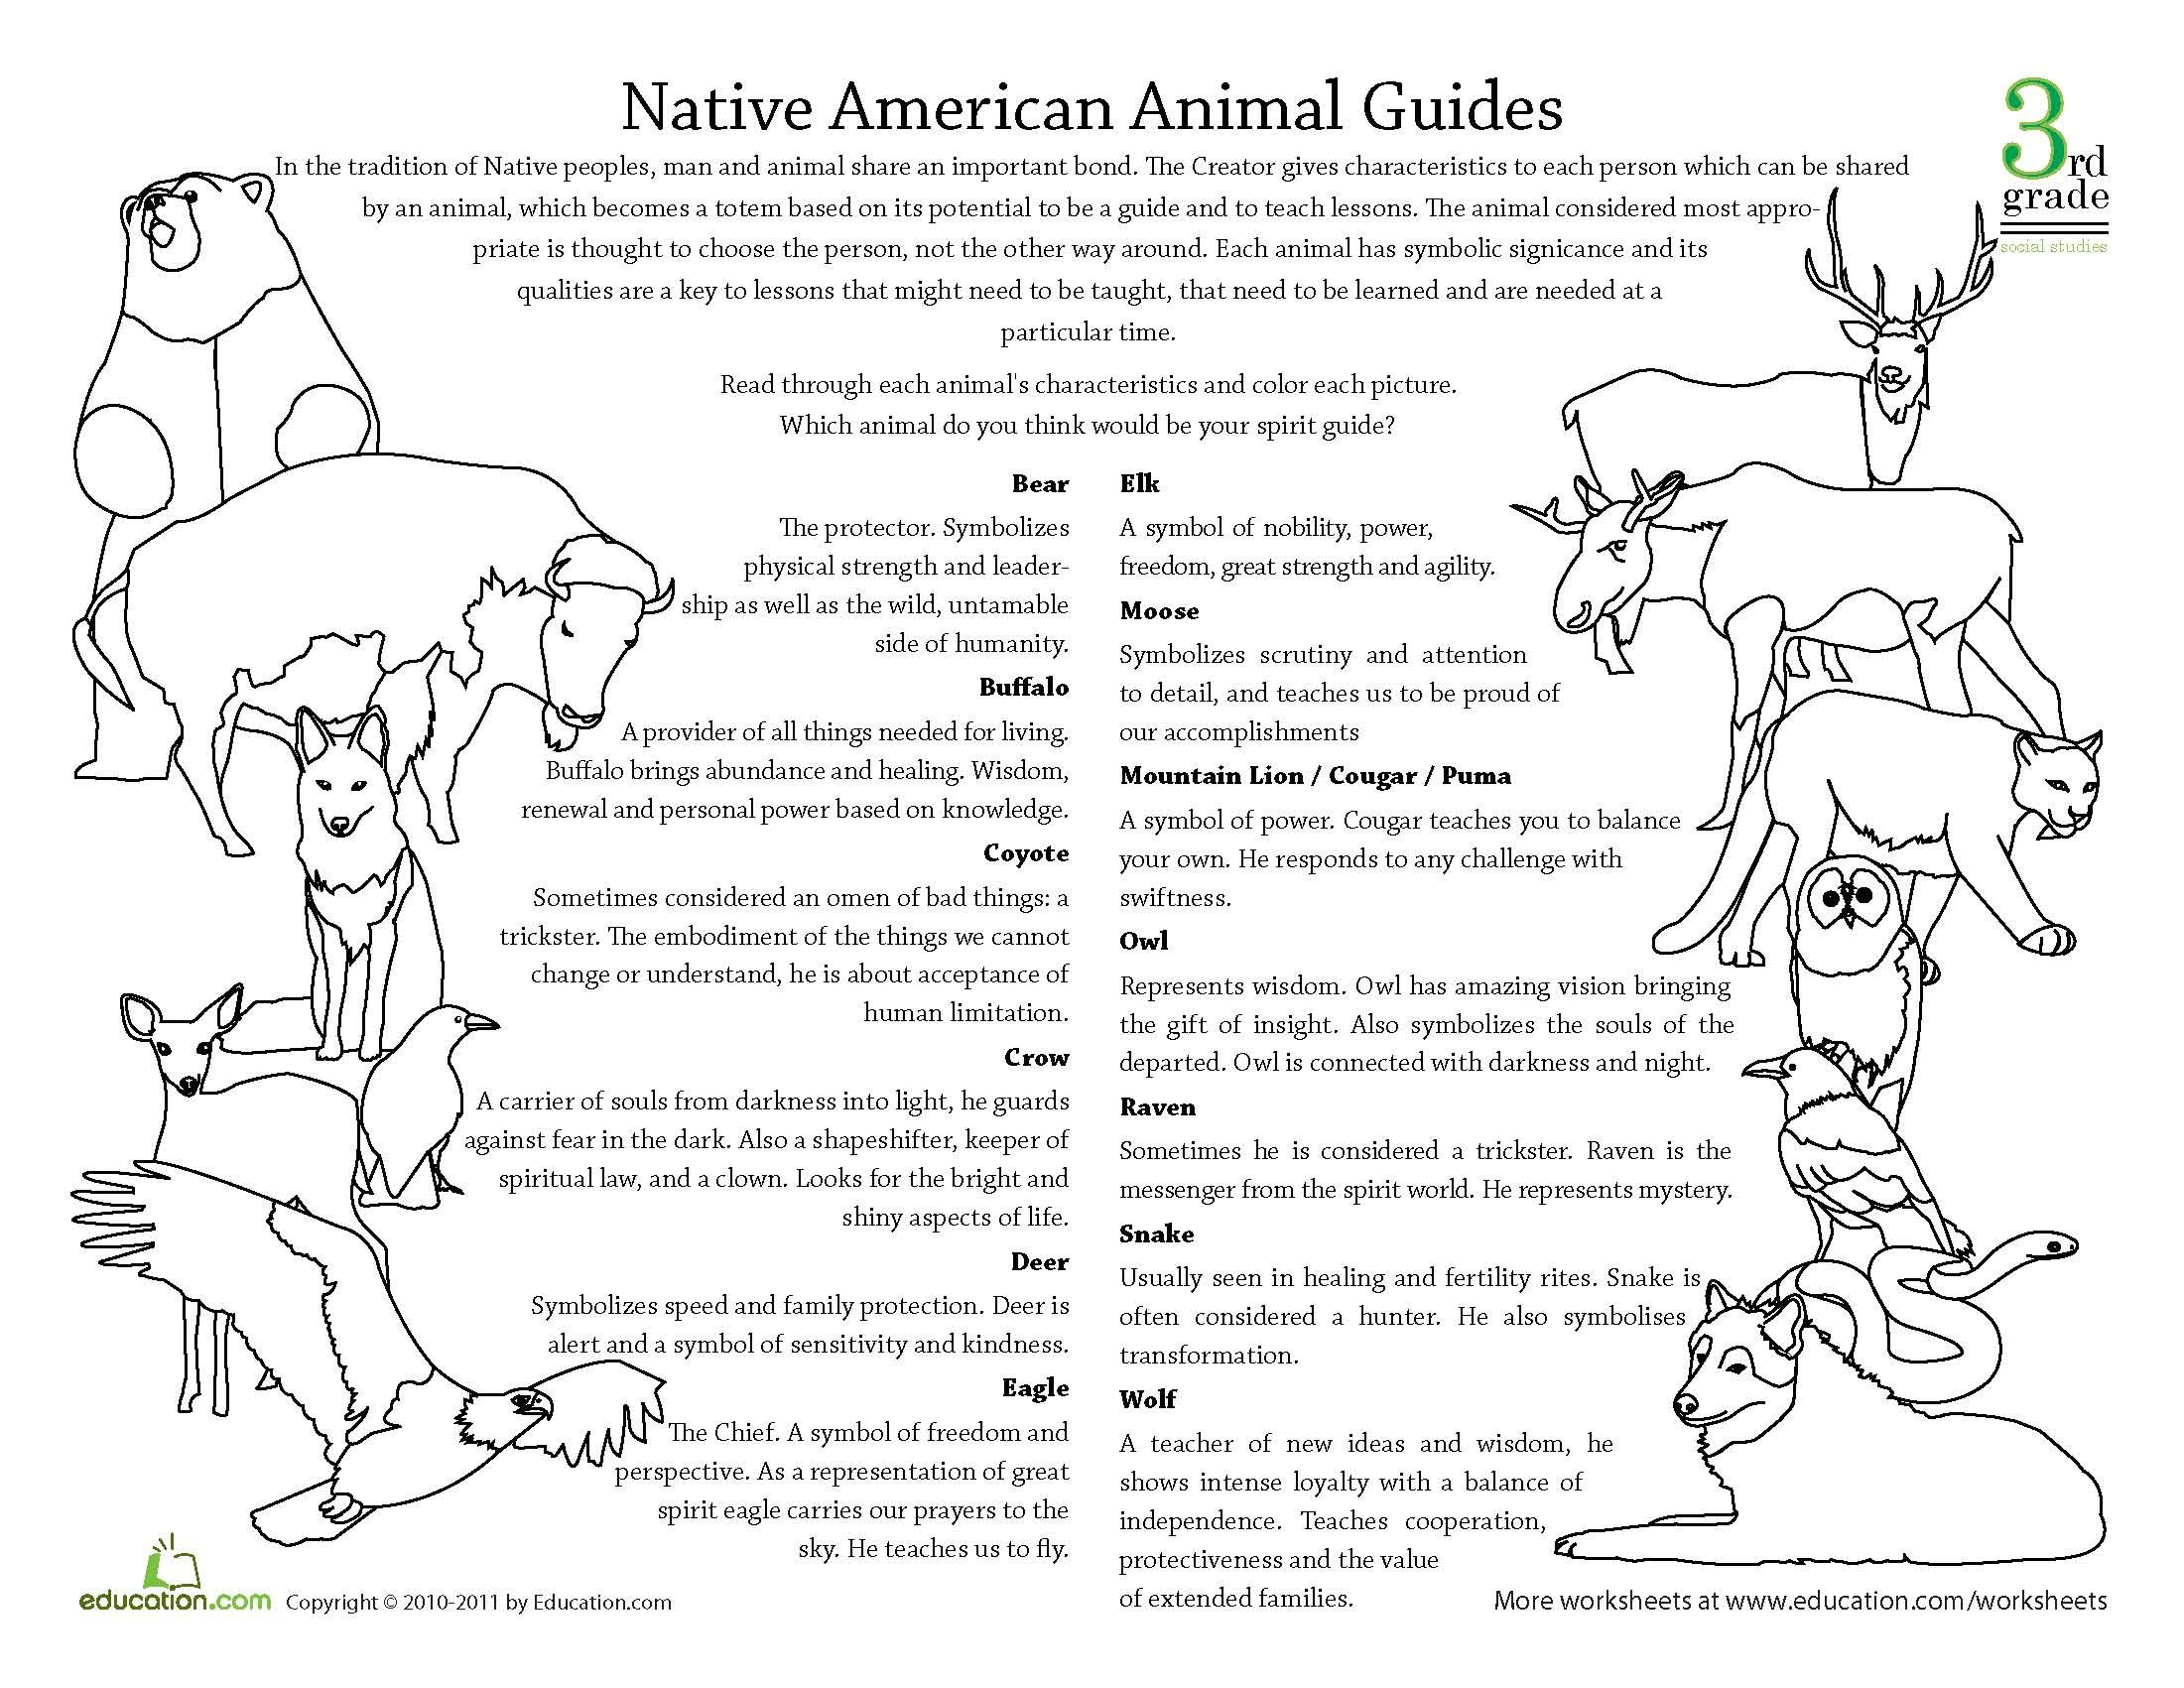 Worksheets American Symbols Worksheet spirit animal meanings httpwww education comworksheet articlenative american g